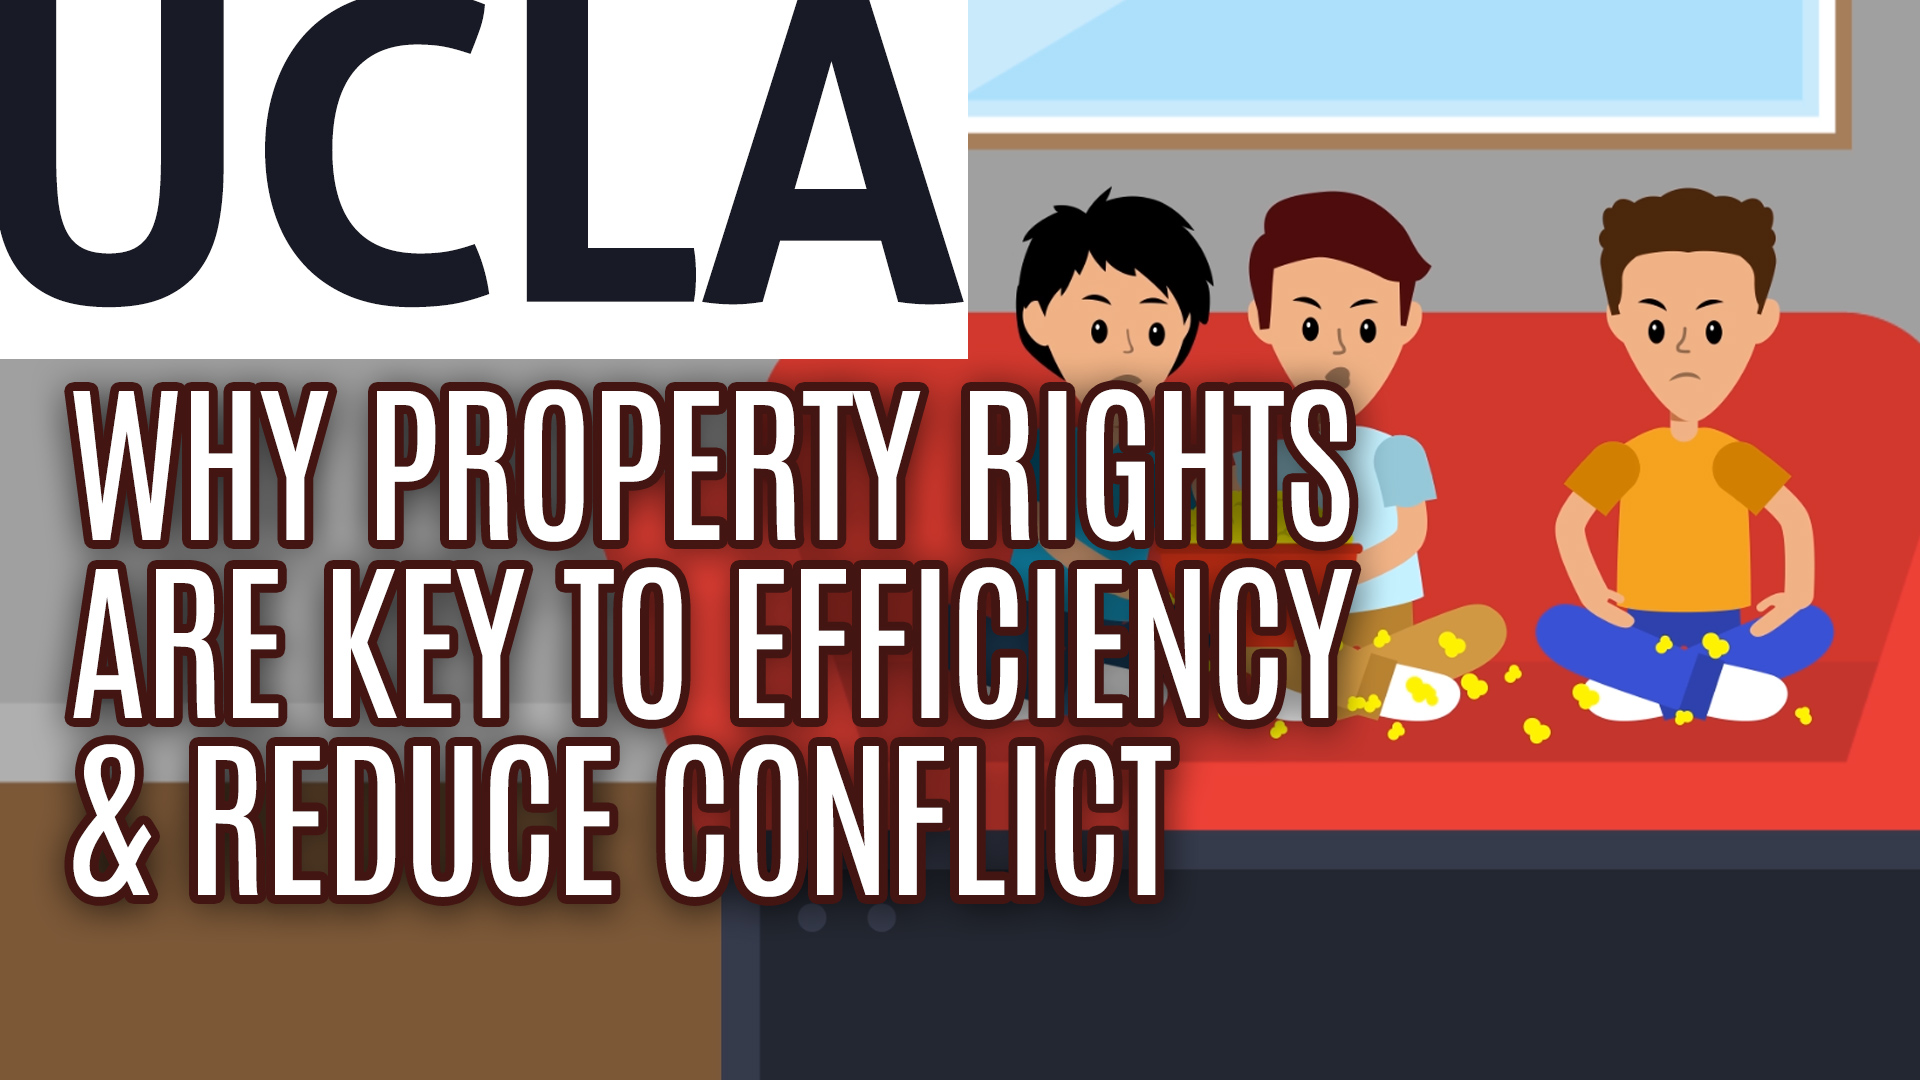 Why Property Rights Are Key to Efficiency and Reduce Conflict